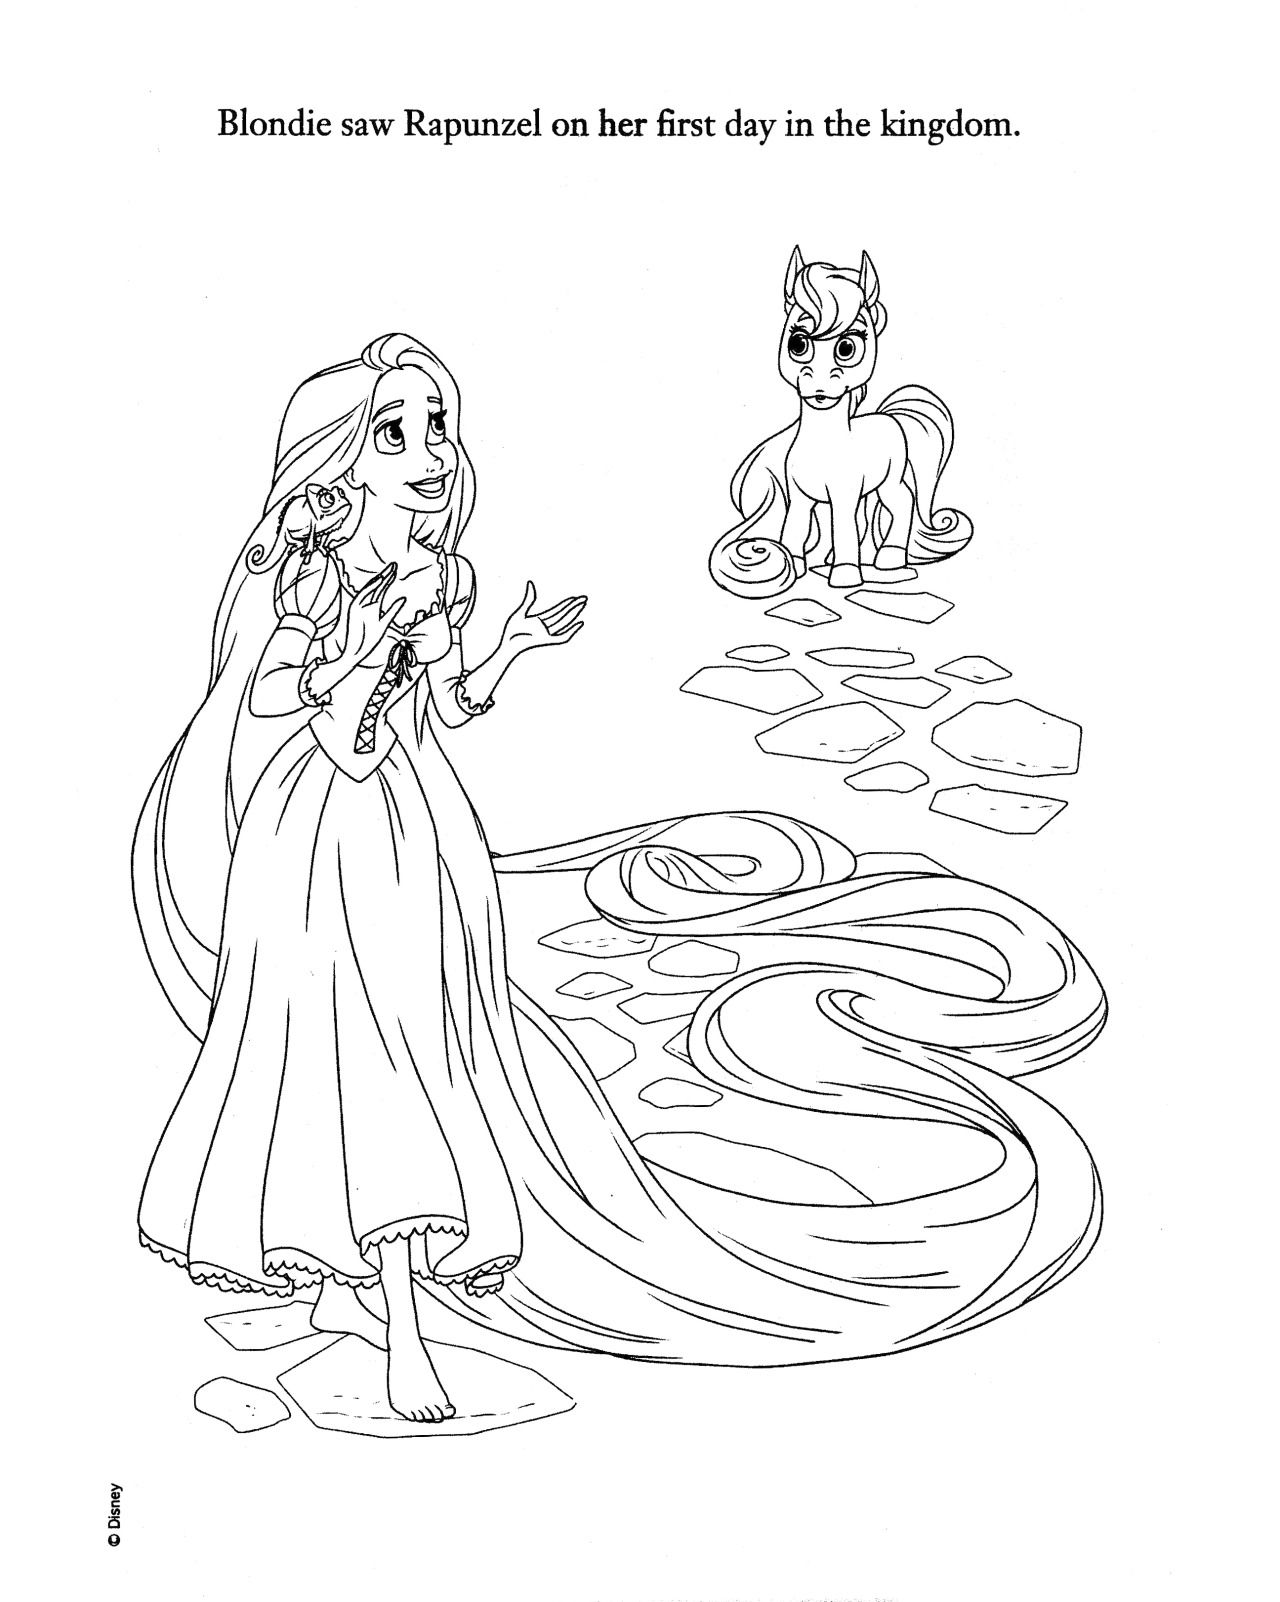 palace pets coloring pages - Google-søgning | Disney coloring pages, Tangled  coloring pages, Princess coloring pages